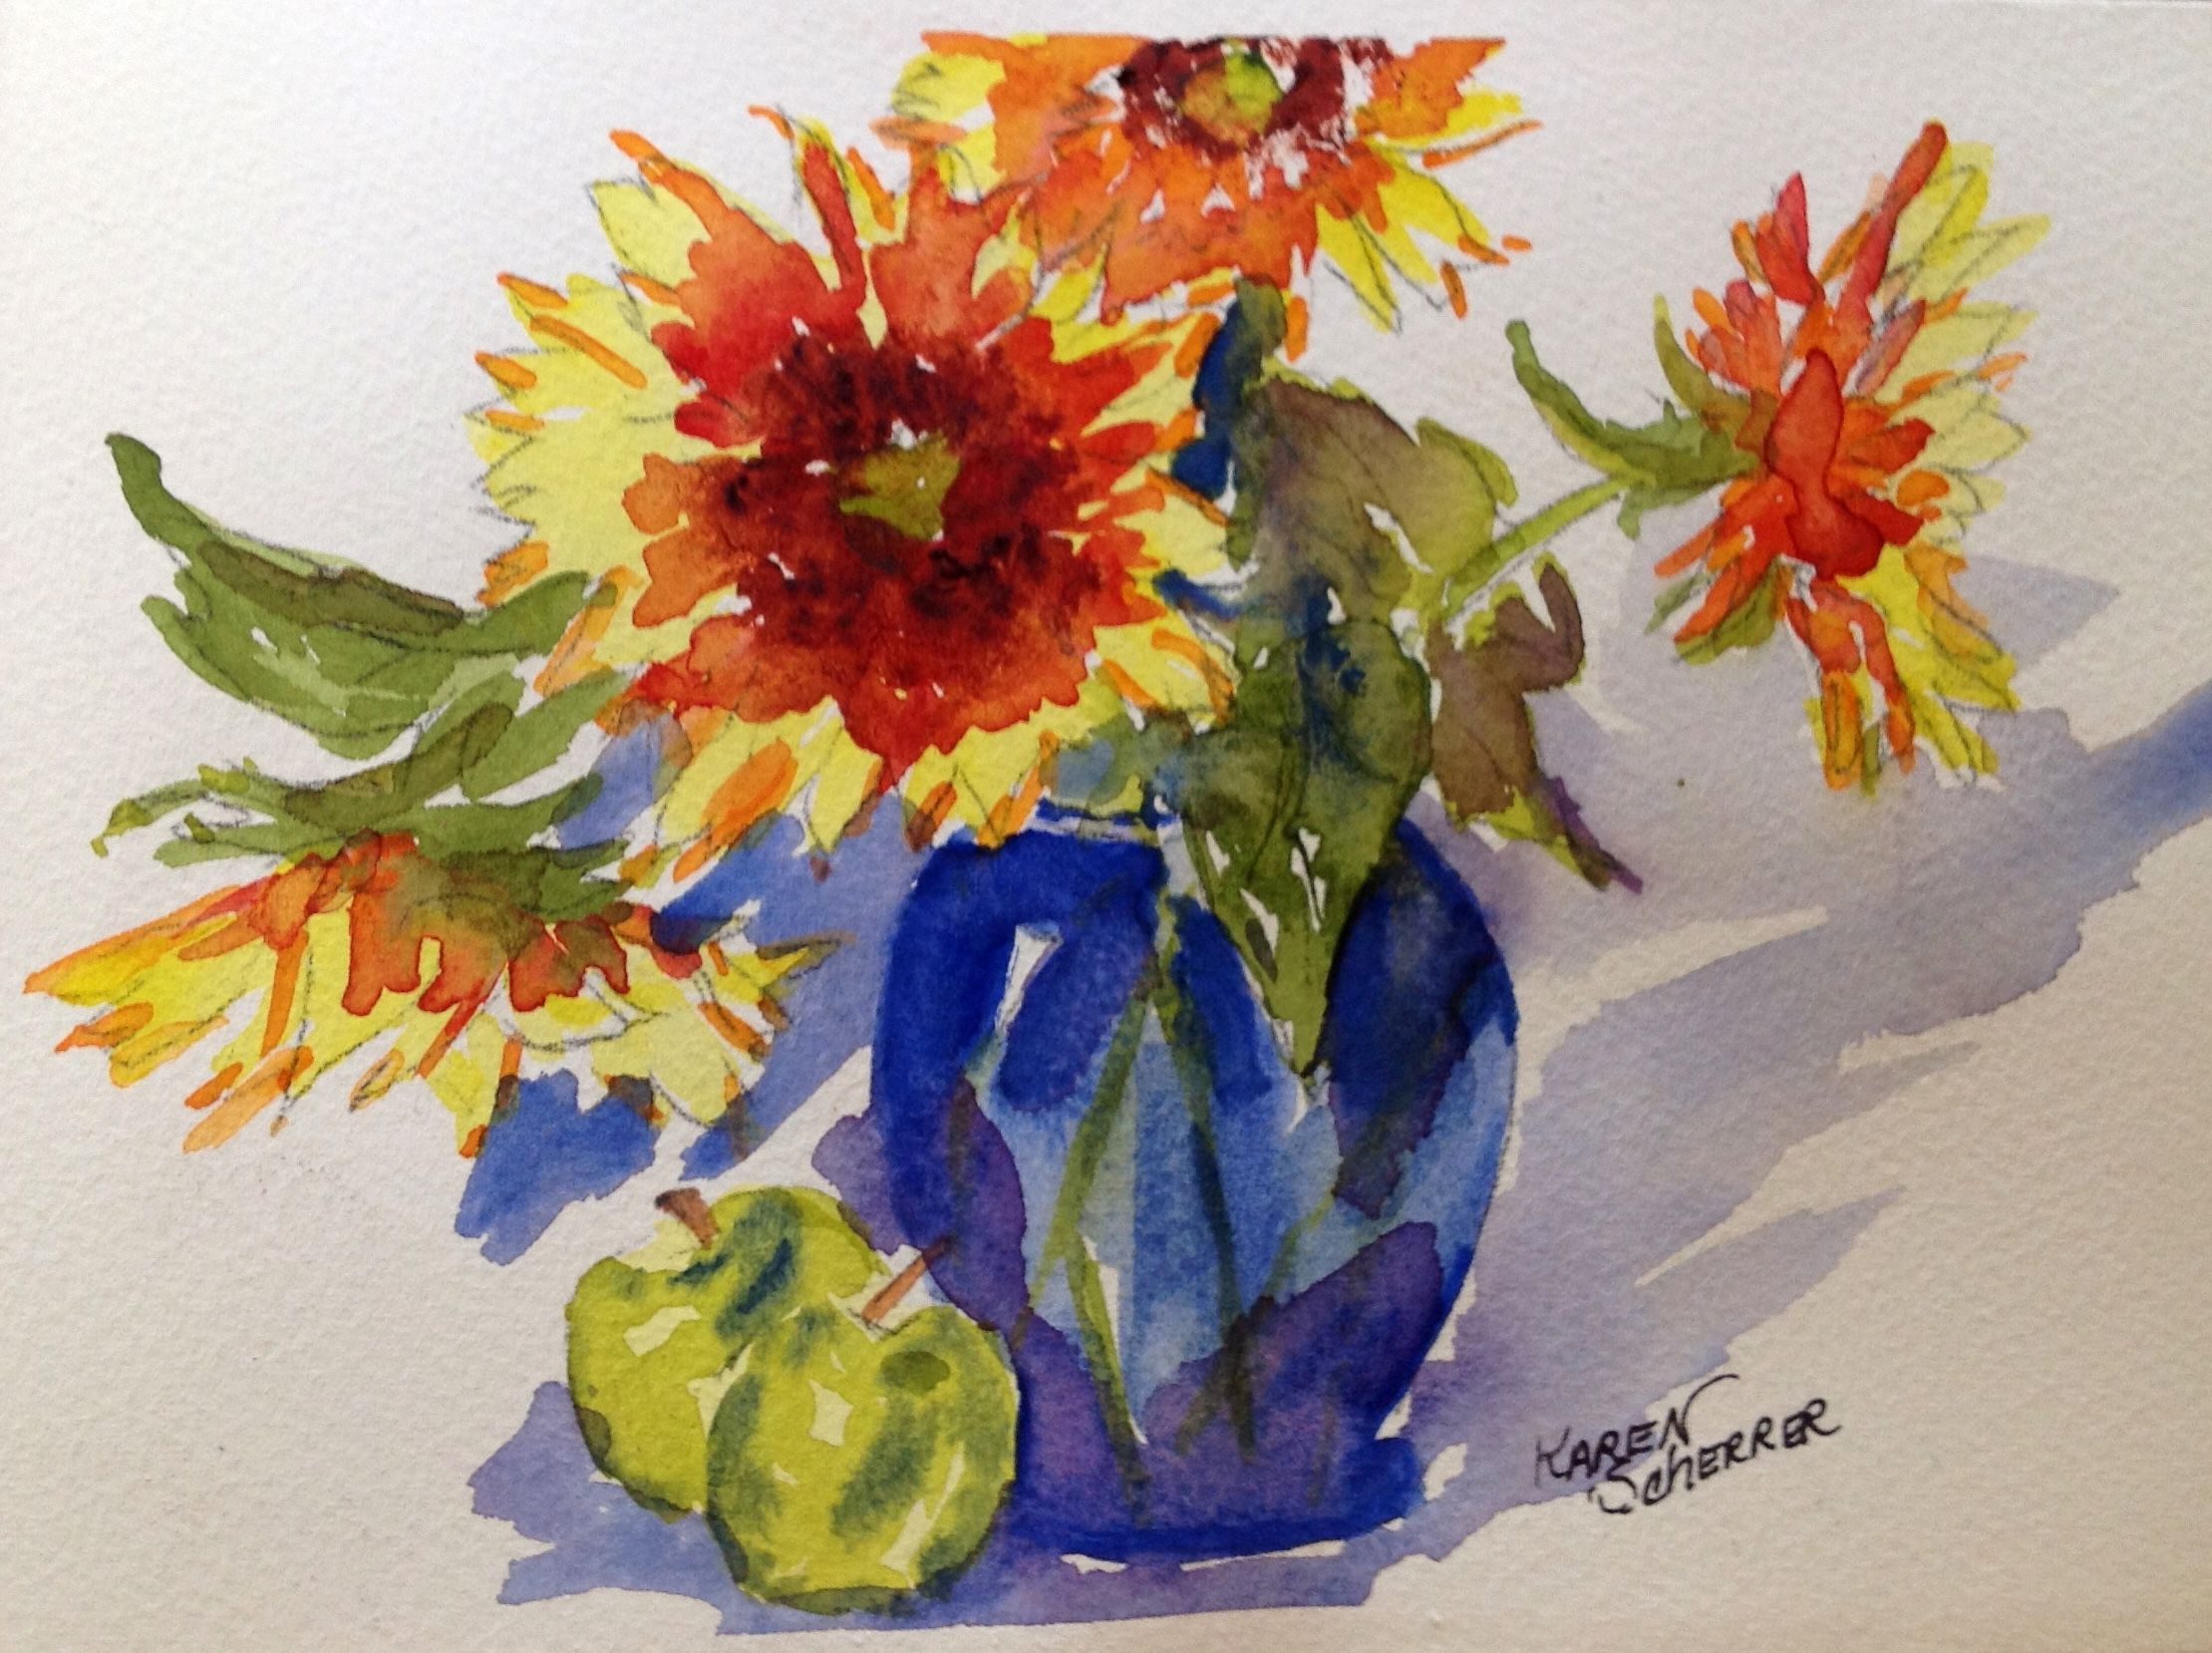 Watercolor artist in texas -  Sunshine In In A Blue Vase By Texas Watercolor Artist Karen Scherrer